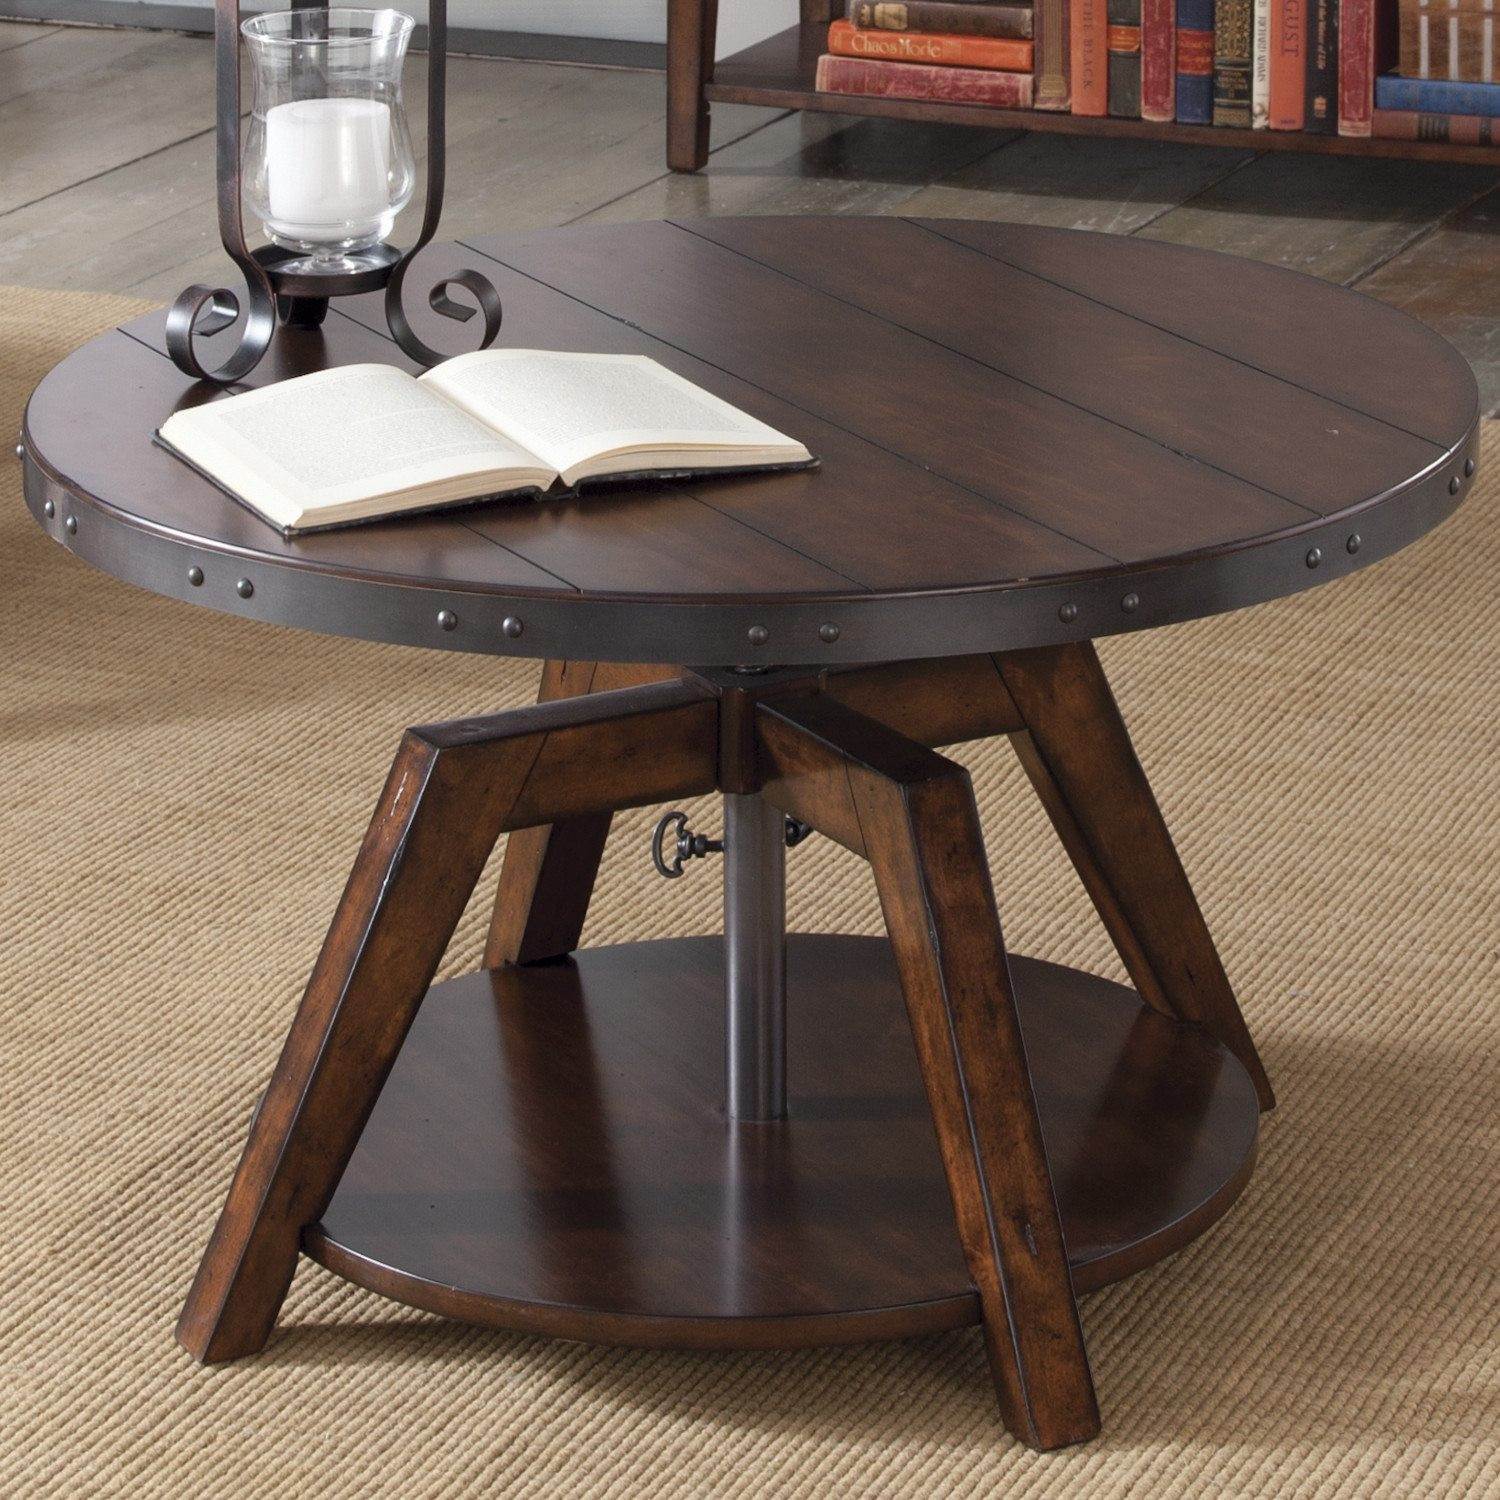 Best ideas about Coffee Table To Dining Table . Save or Pin Furniture Dining Table Converts To Coffee Table Now.